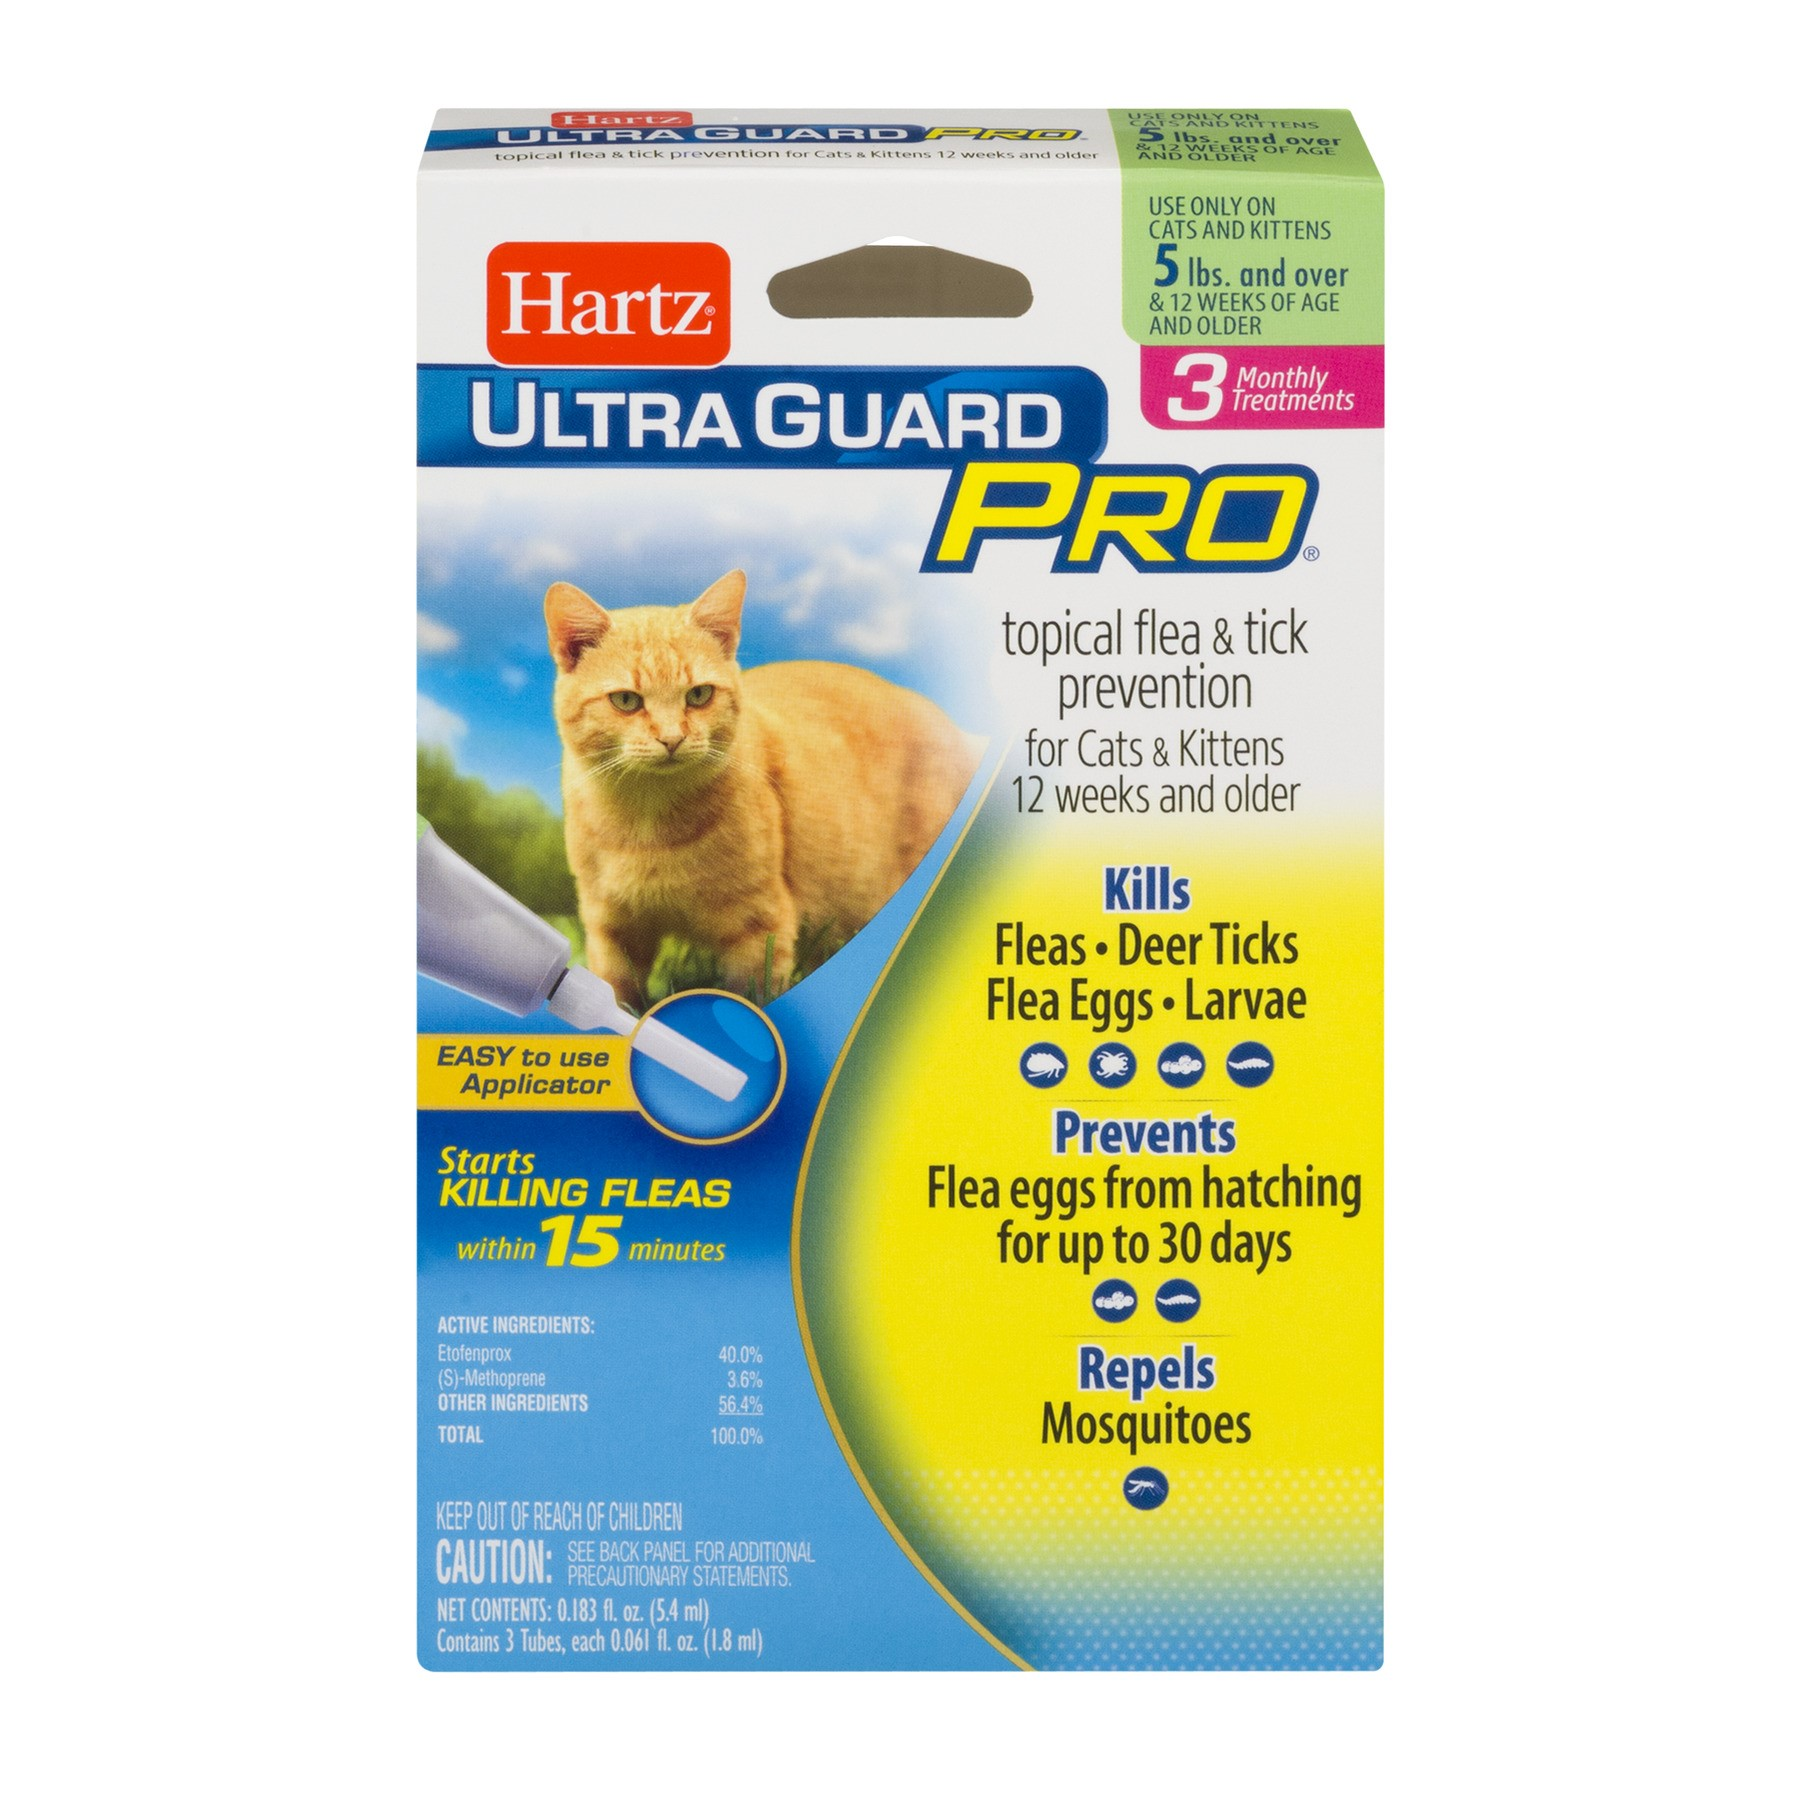 Hartz UltraGuard Pro Flea and Tick Cat Treatment, 3 Monthly Treatments